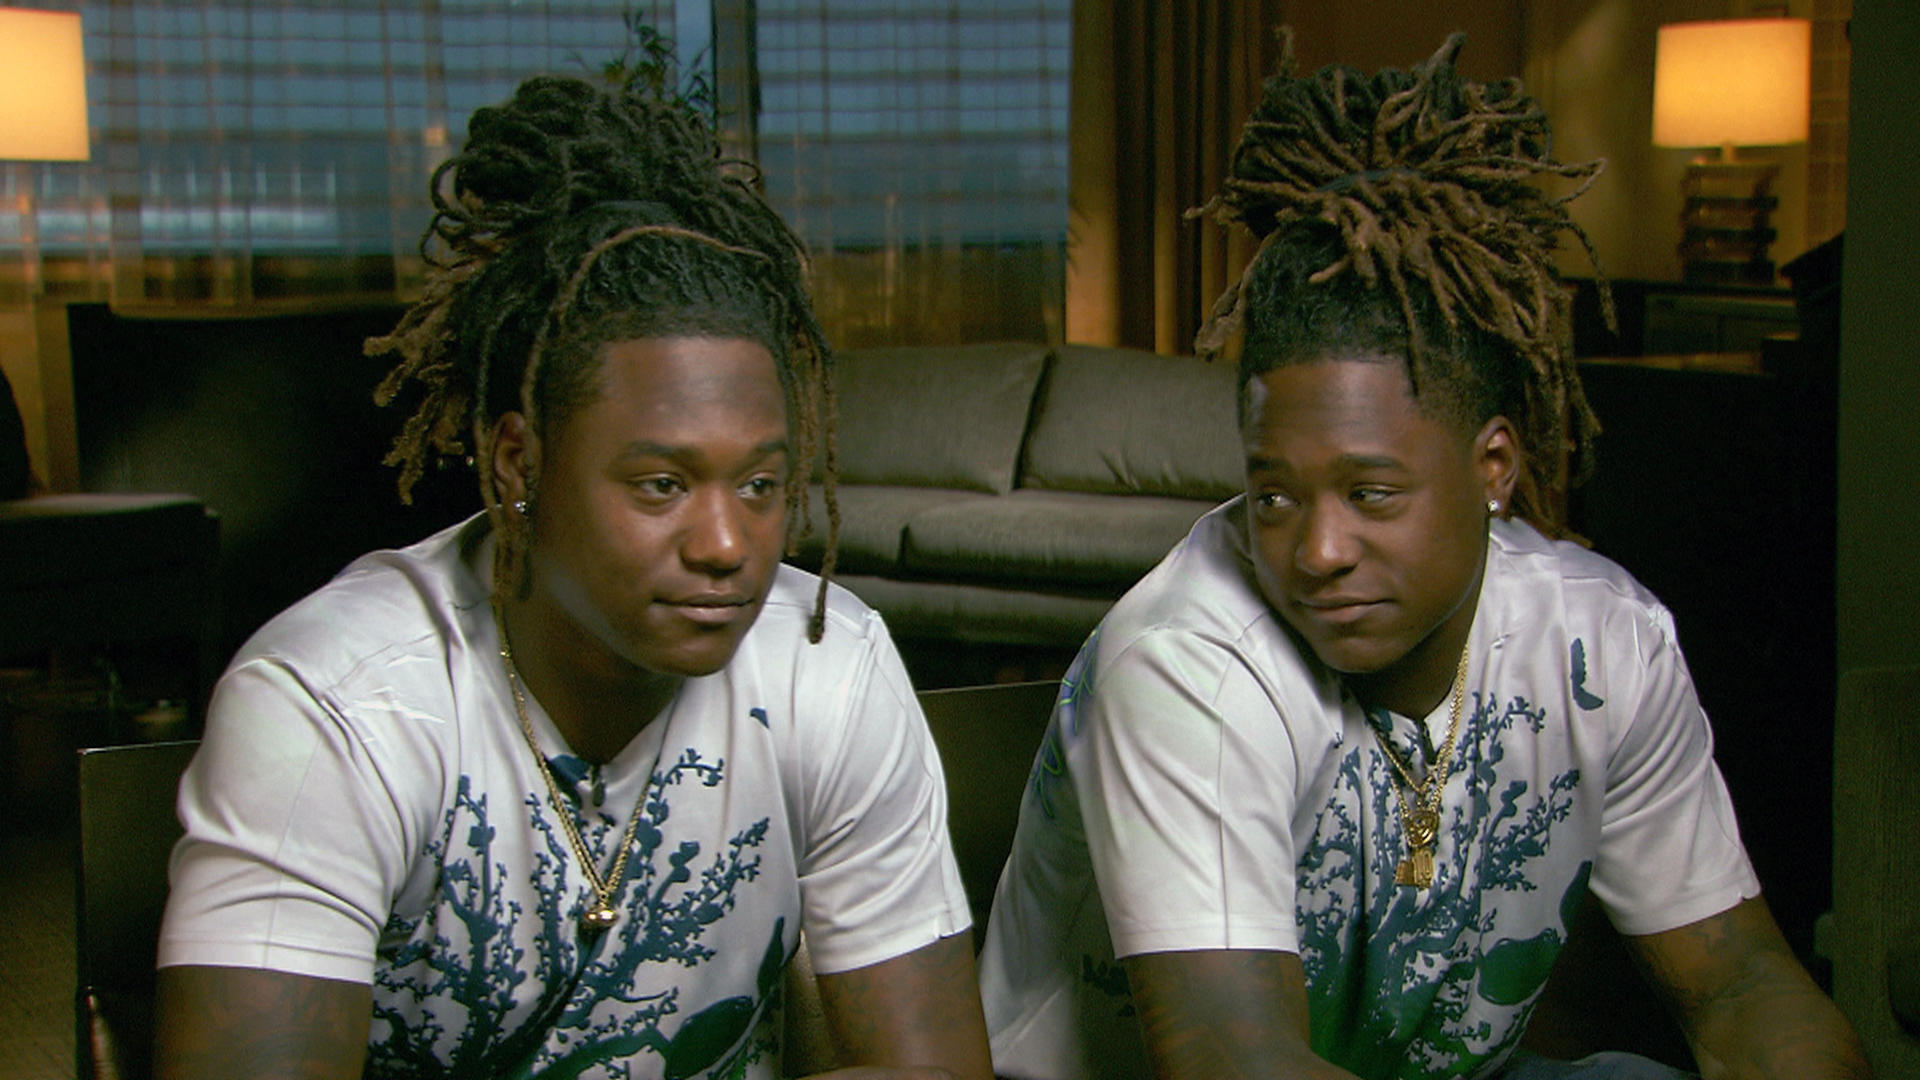 21e27866 Brotherly love: Shaquem and Shaquill Griffin's pact